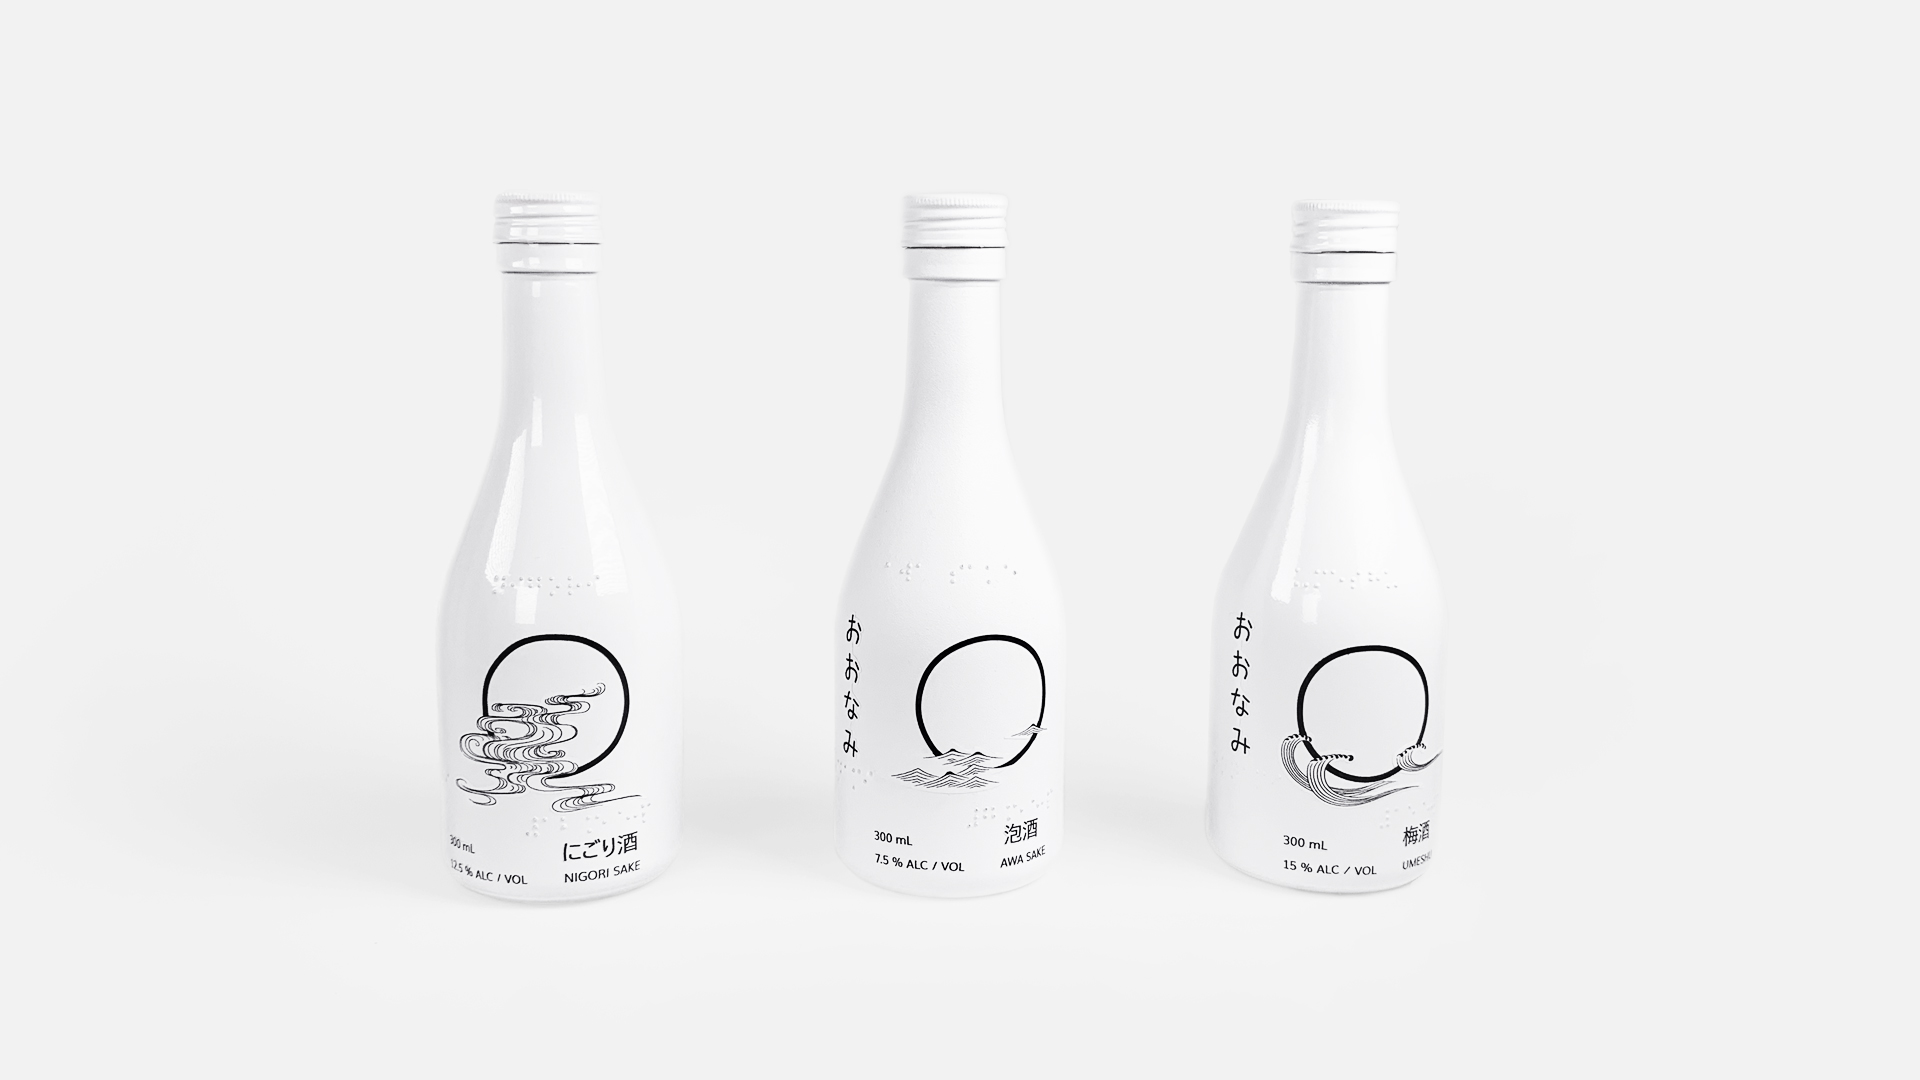 Branding and packaging for an environmentally friendly sake brand (Oonami) designed to be accessible to the Blind.